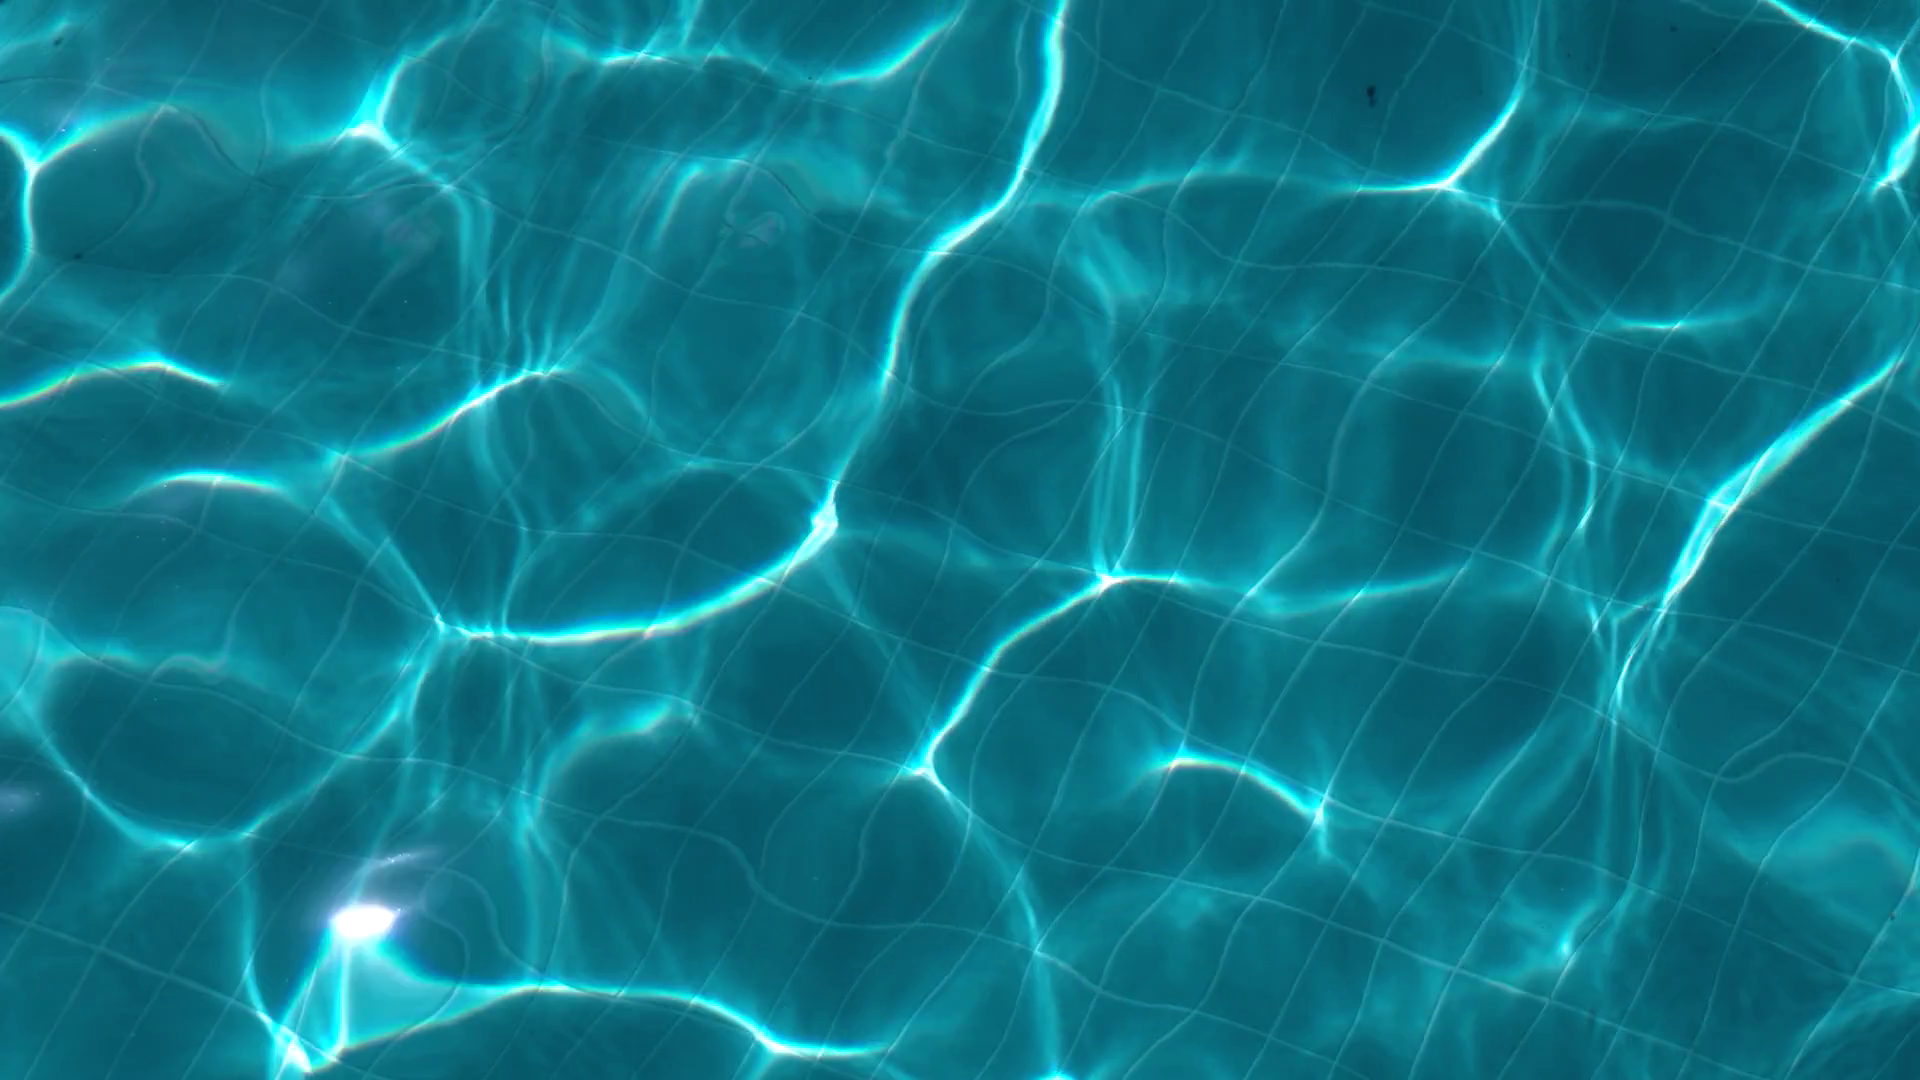 Ripple Blue Water in Swimming Pool, Water Texture Motion Background ...